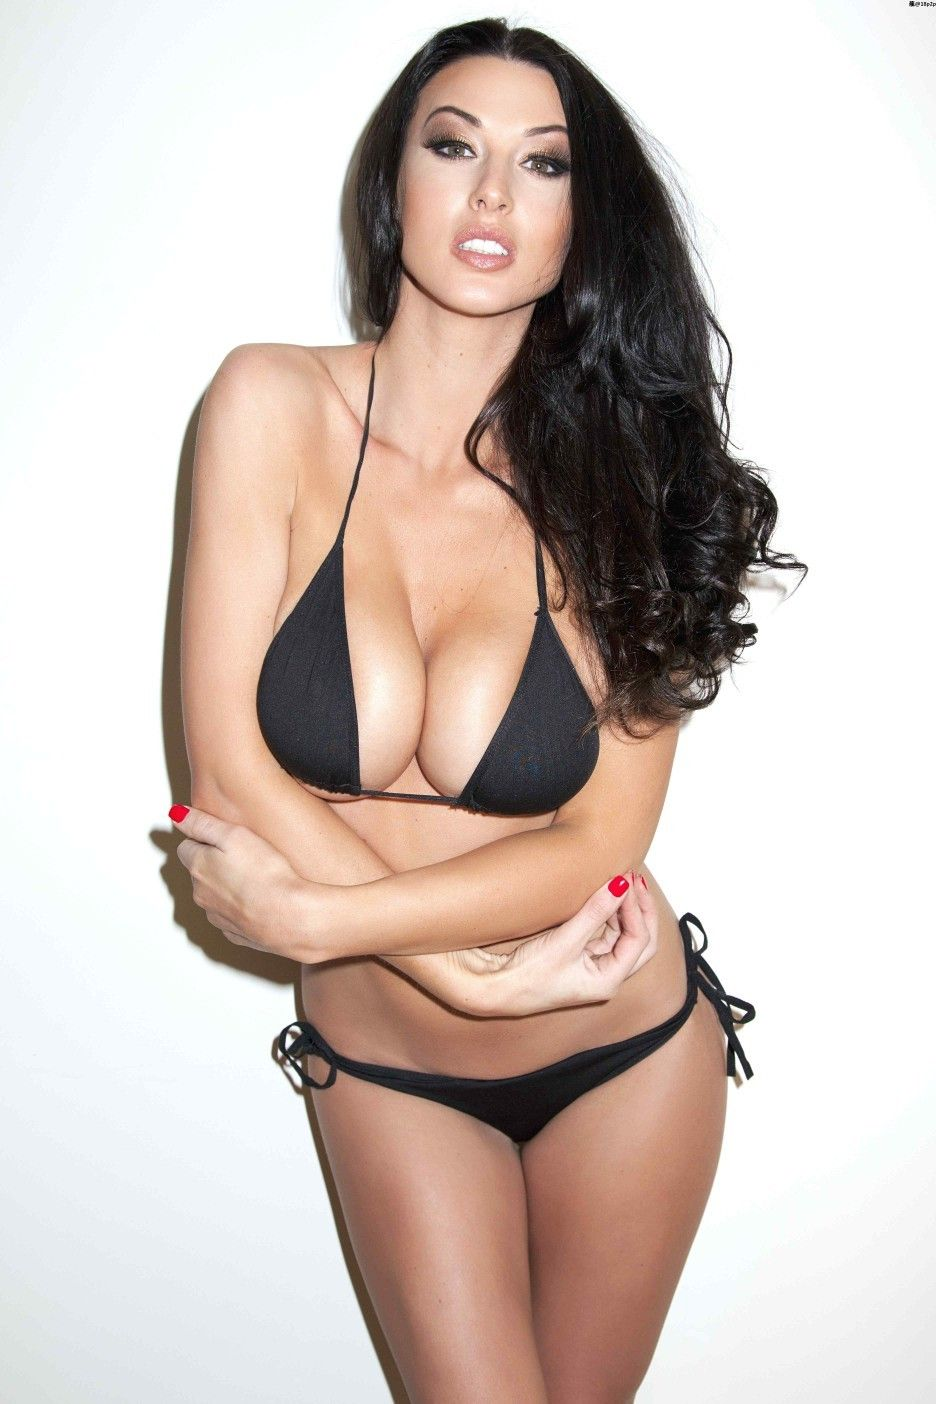 boobiekinies | alice goodwin | pinterest | alice goodwin, alice and nude